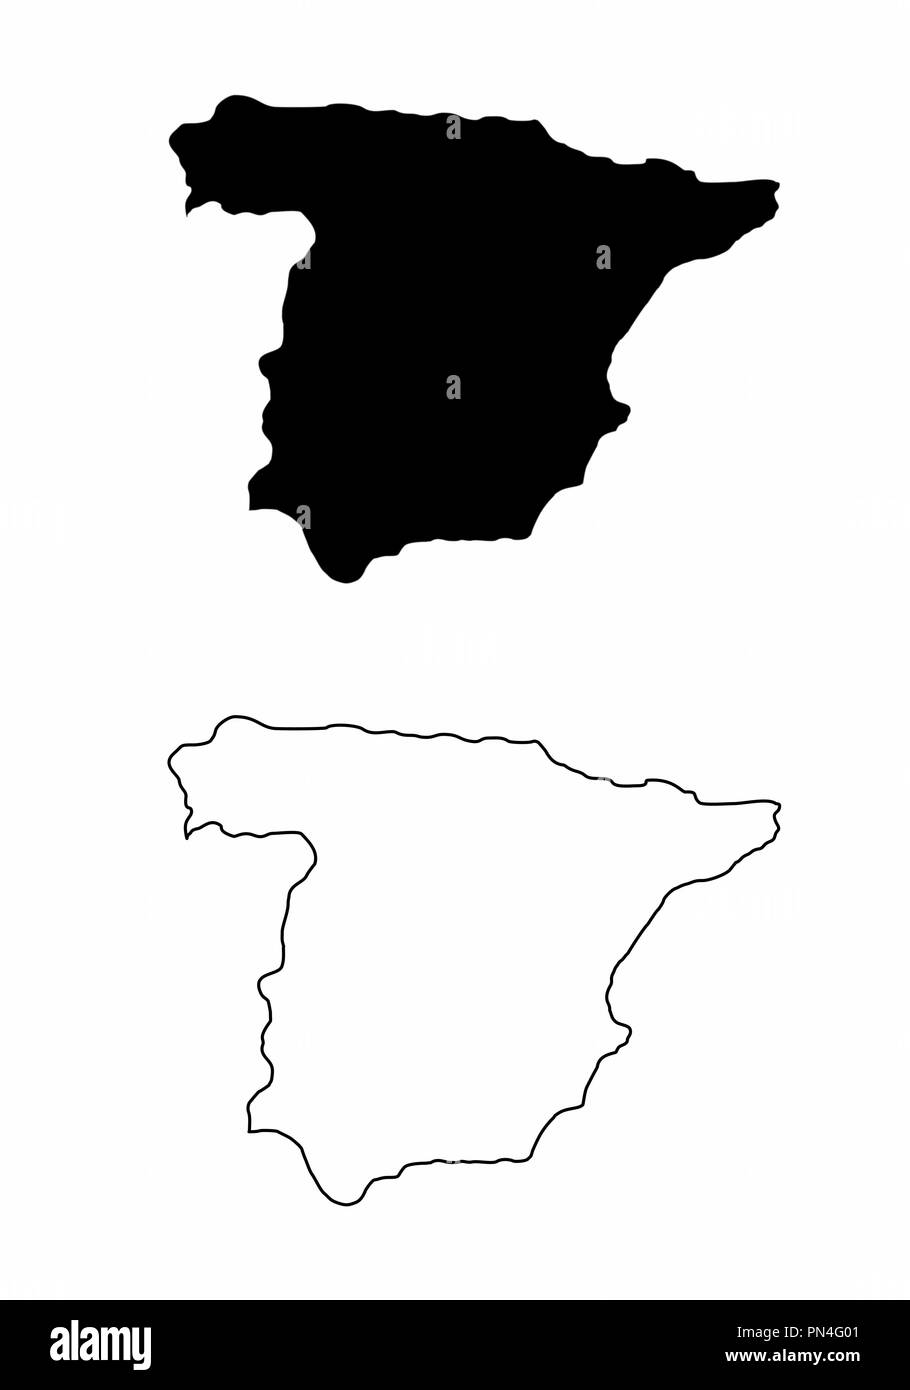 Maps of Spain - Stock Vector